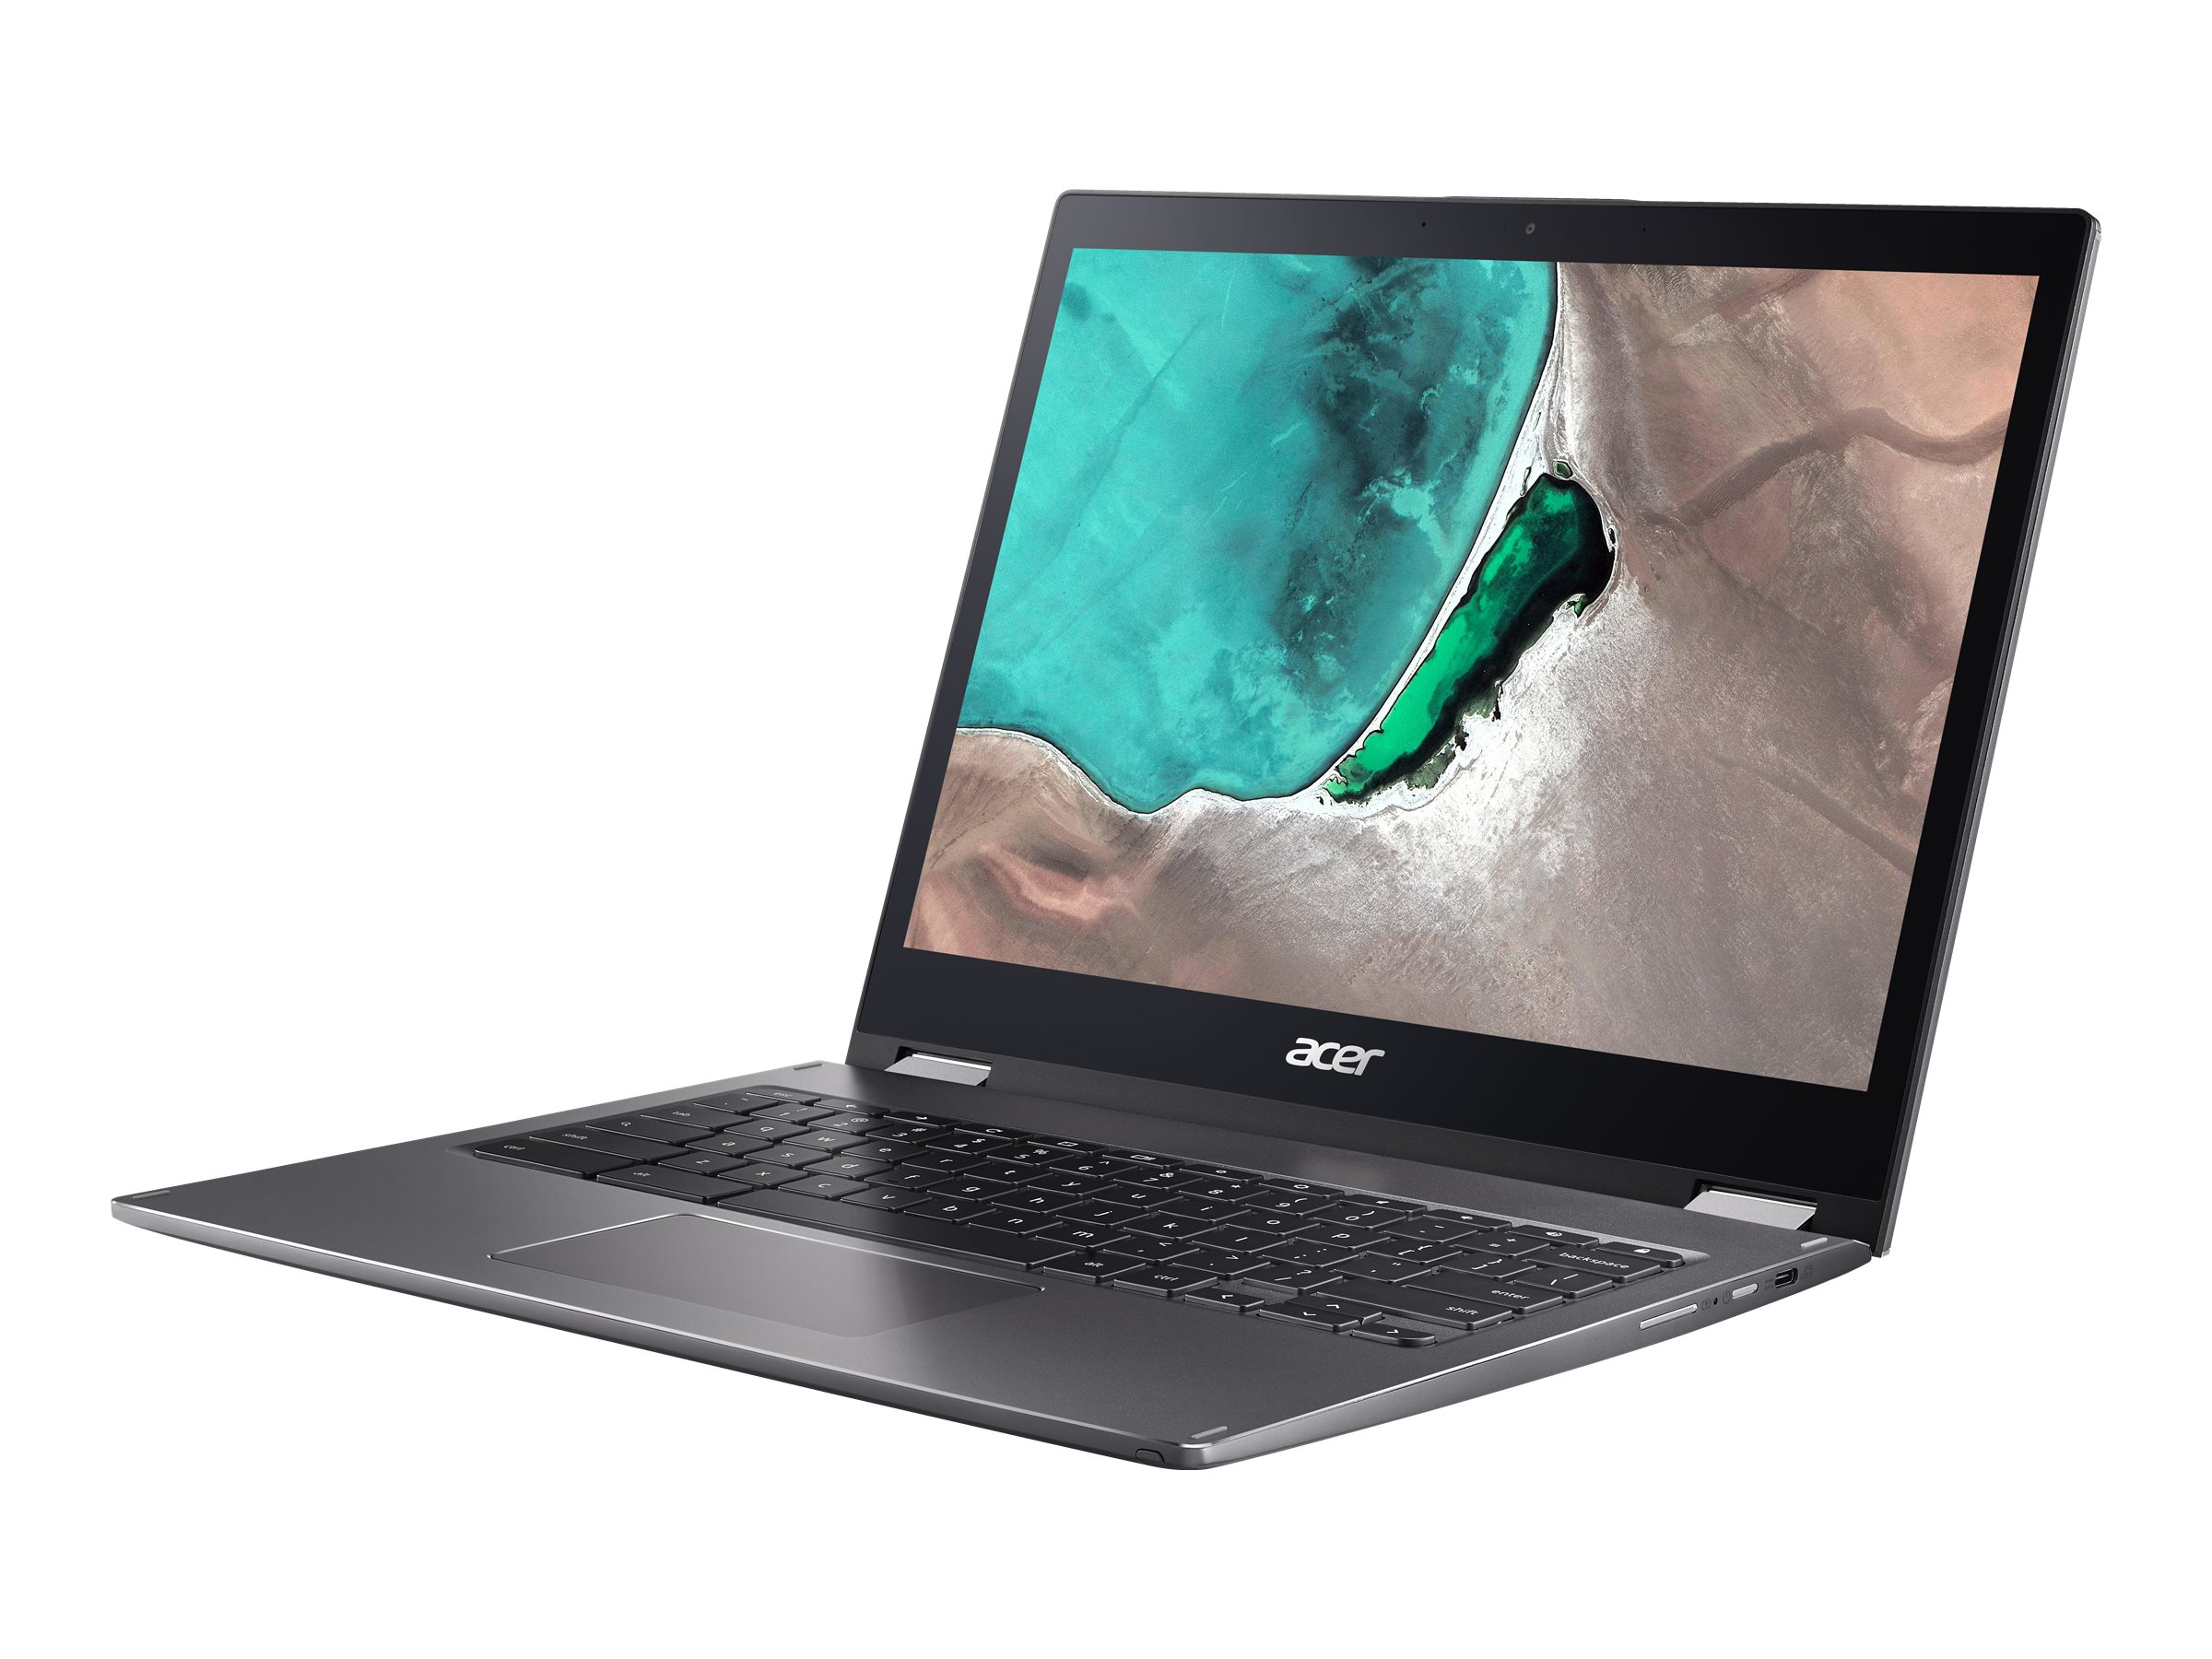 Acer Chromebook Spin 13 CP713-1WN-39P5 - Flip-Design - Core i3 8130U / 2.2 GHz - Chrome OS - 8 GB RAM - 64 GB eMMC - 34.